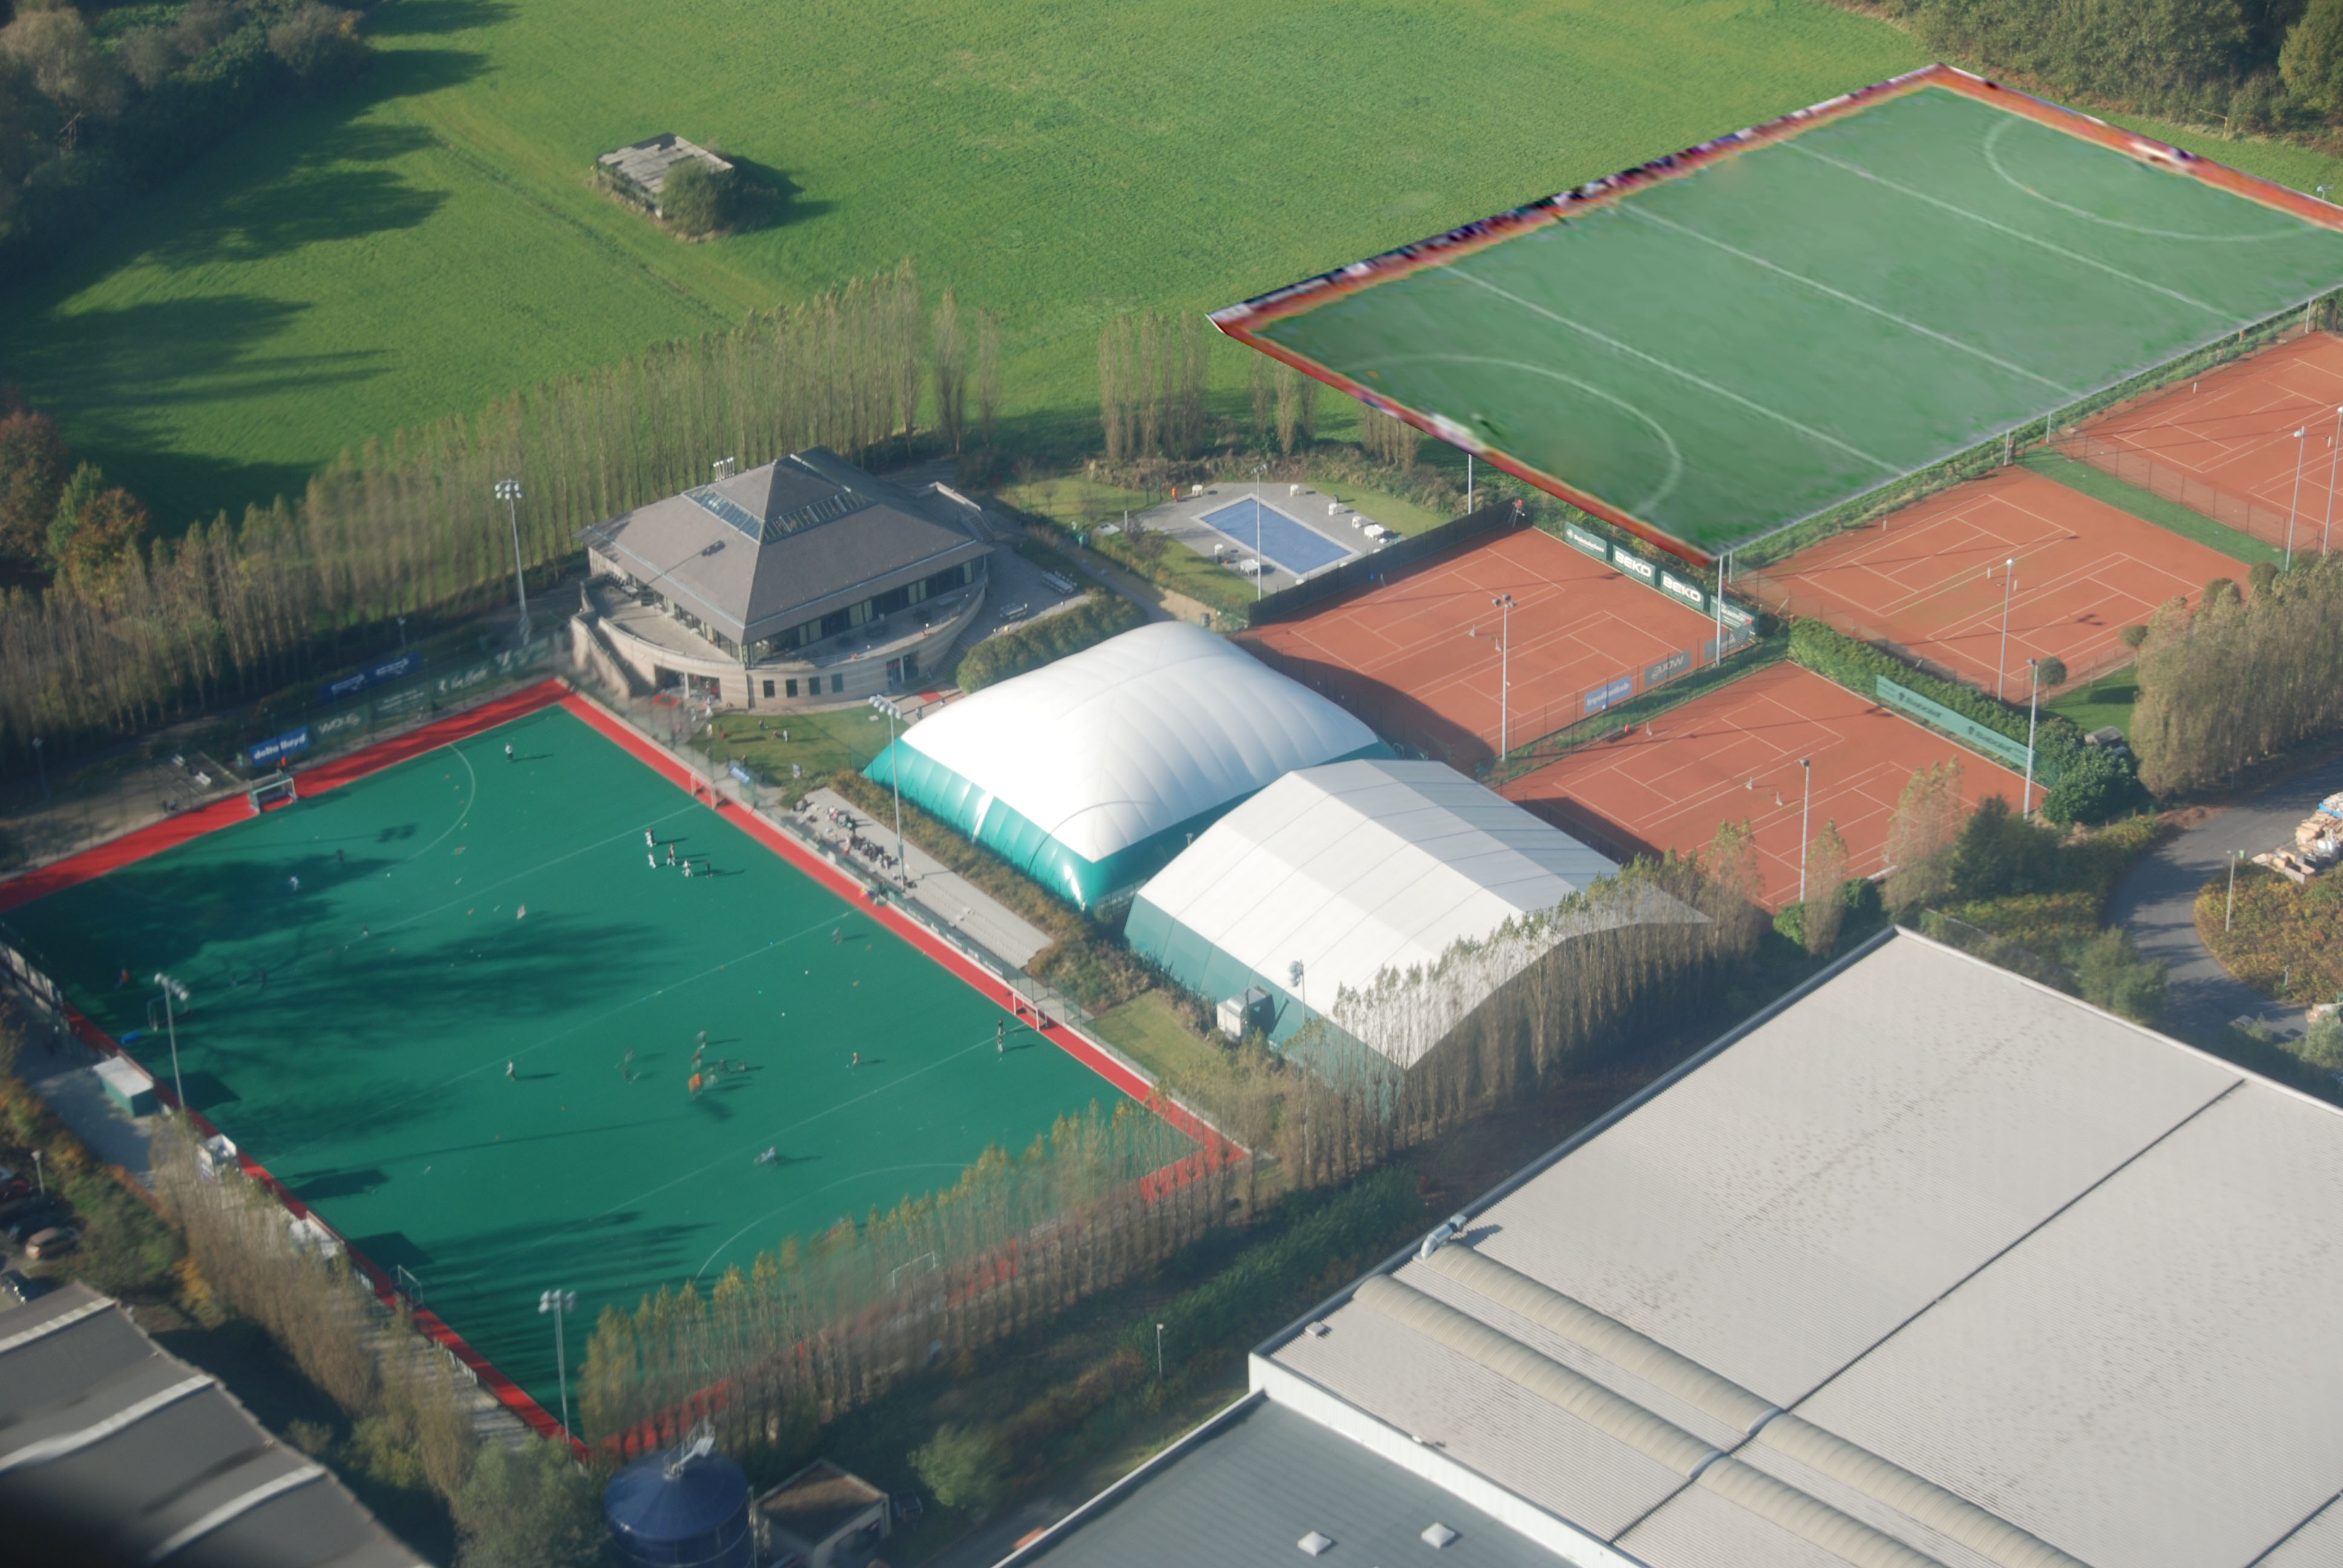 An aerial shot of the Beerschot hockey club in Kontich